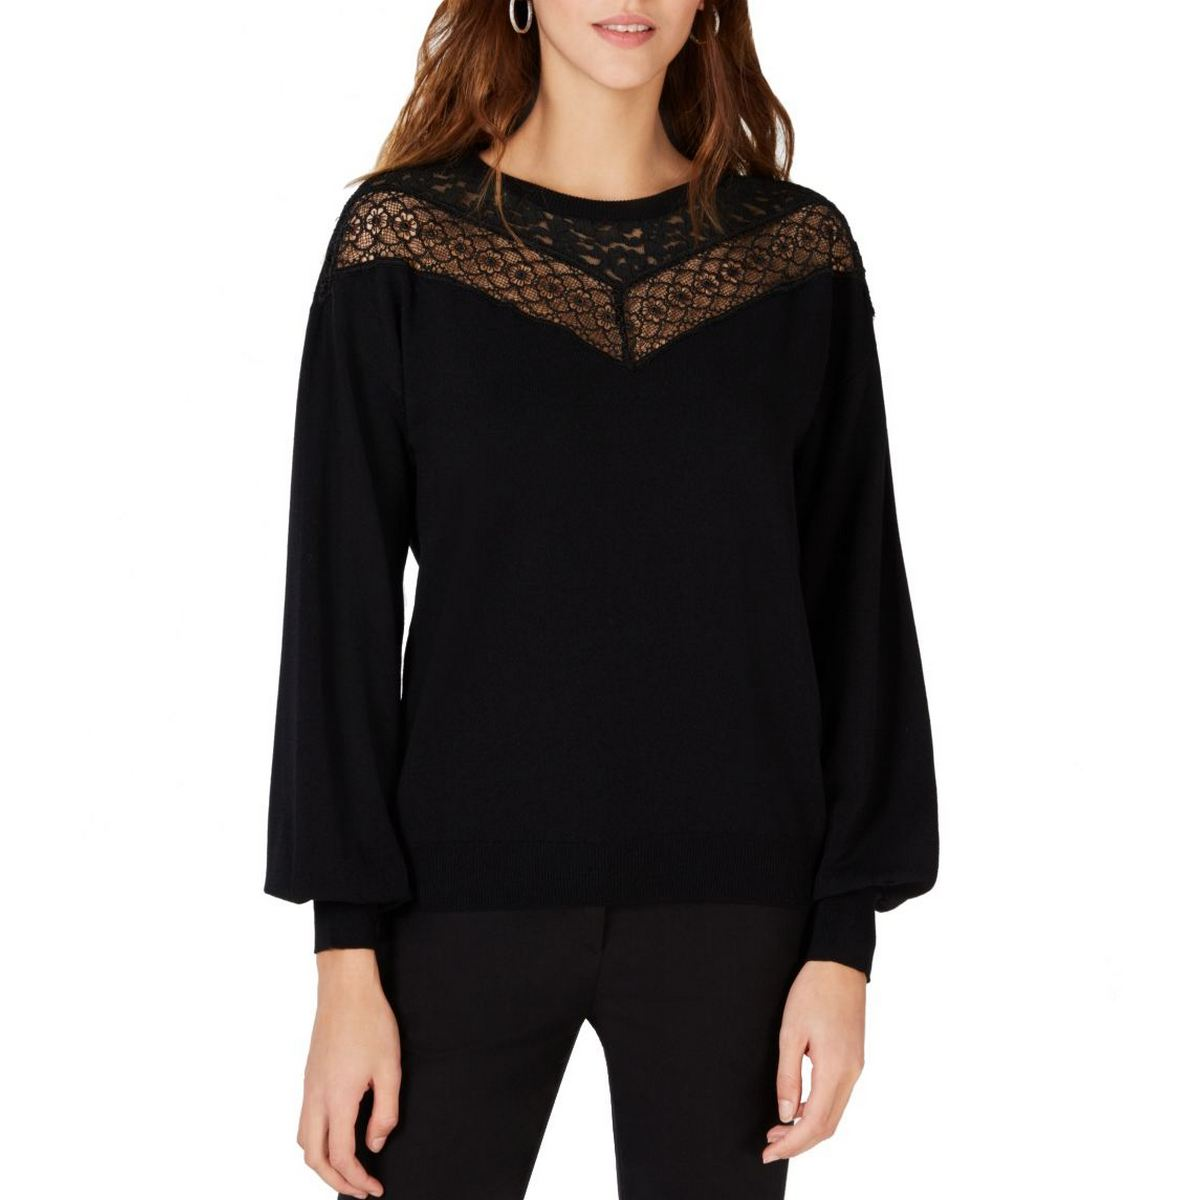 INC NEW Women/'s Black Floral Embroidered Lace Lantern Sleeve Sweater Top TEDO